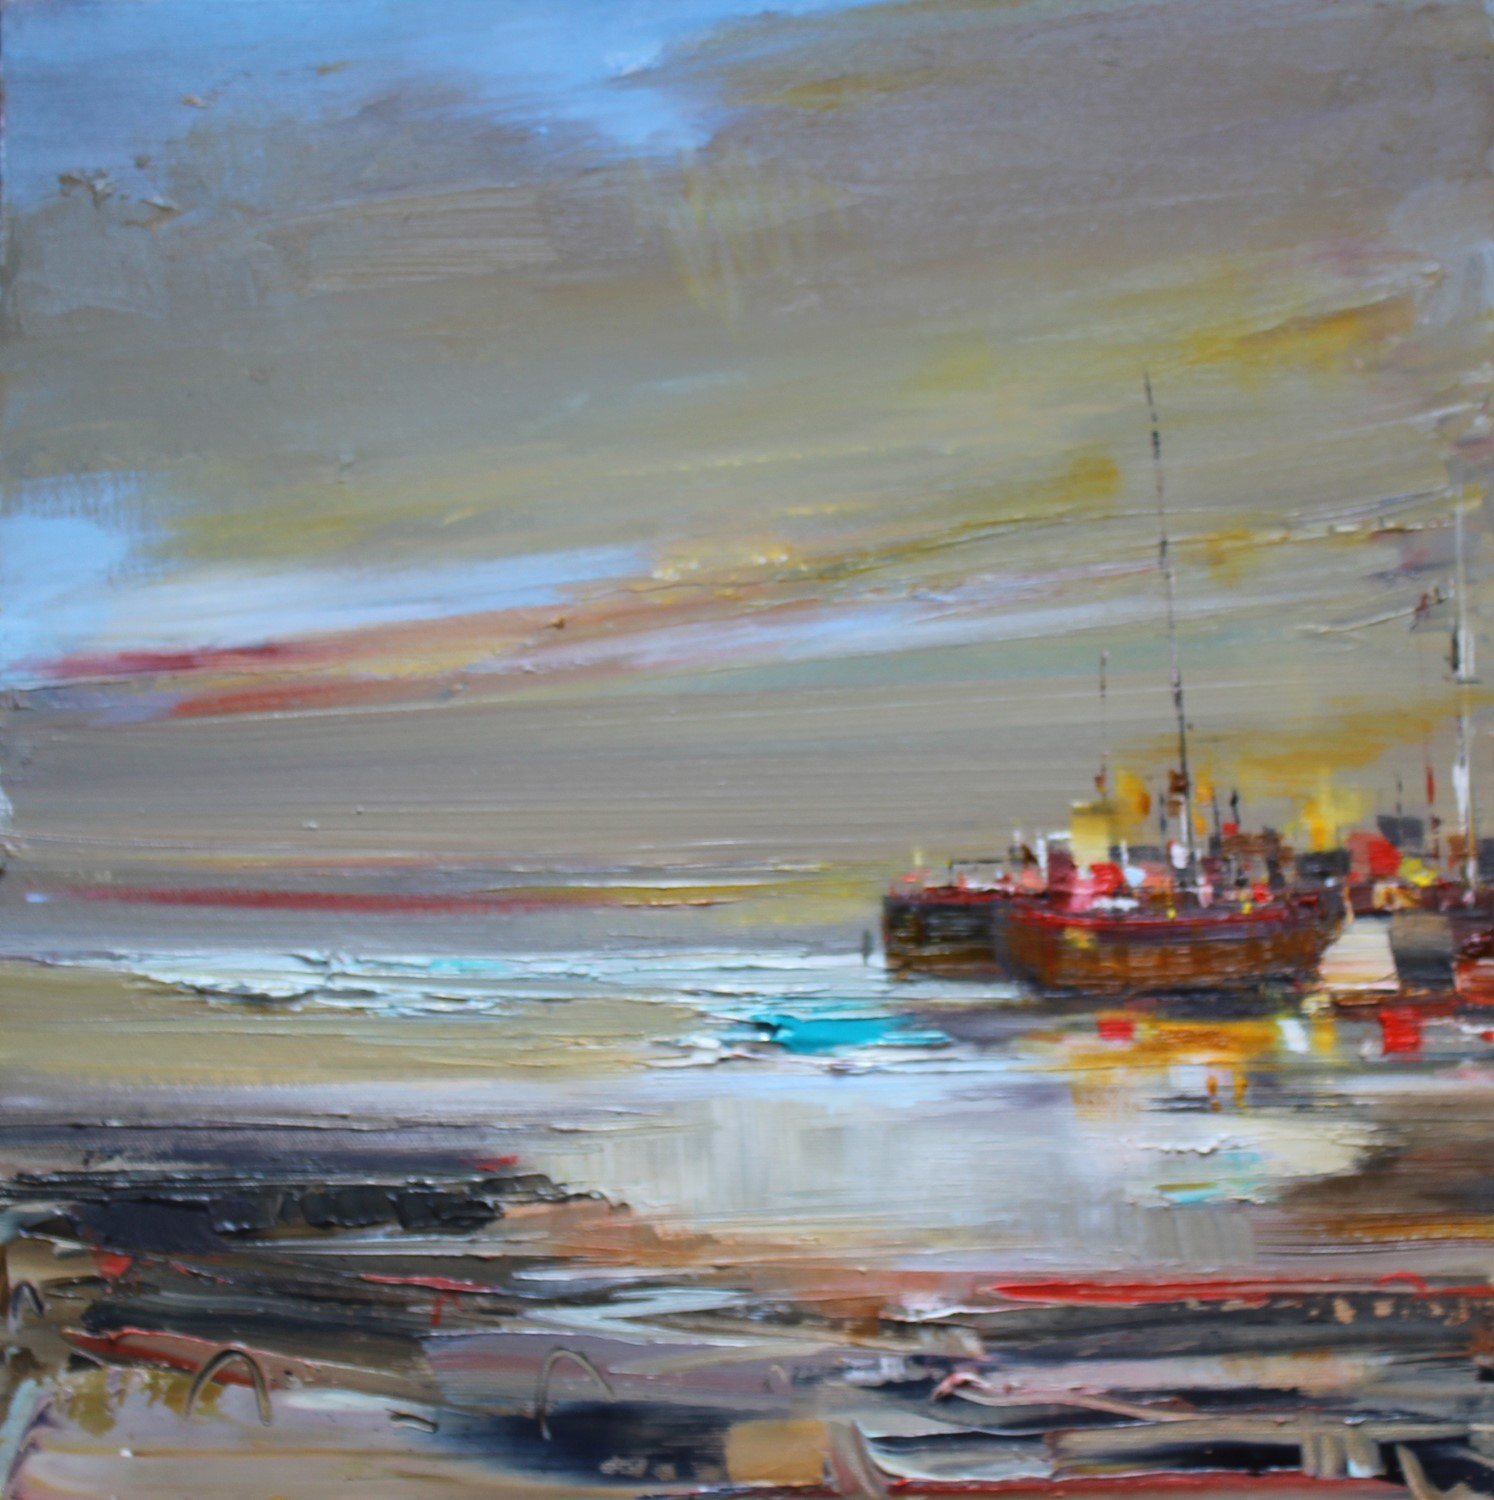 'Harbour by Moonlight' by artist Rosanne Barr